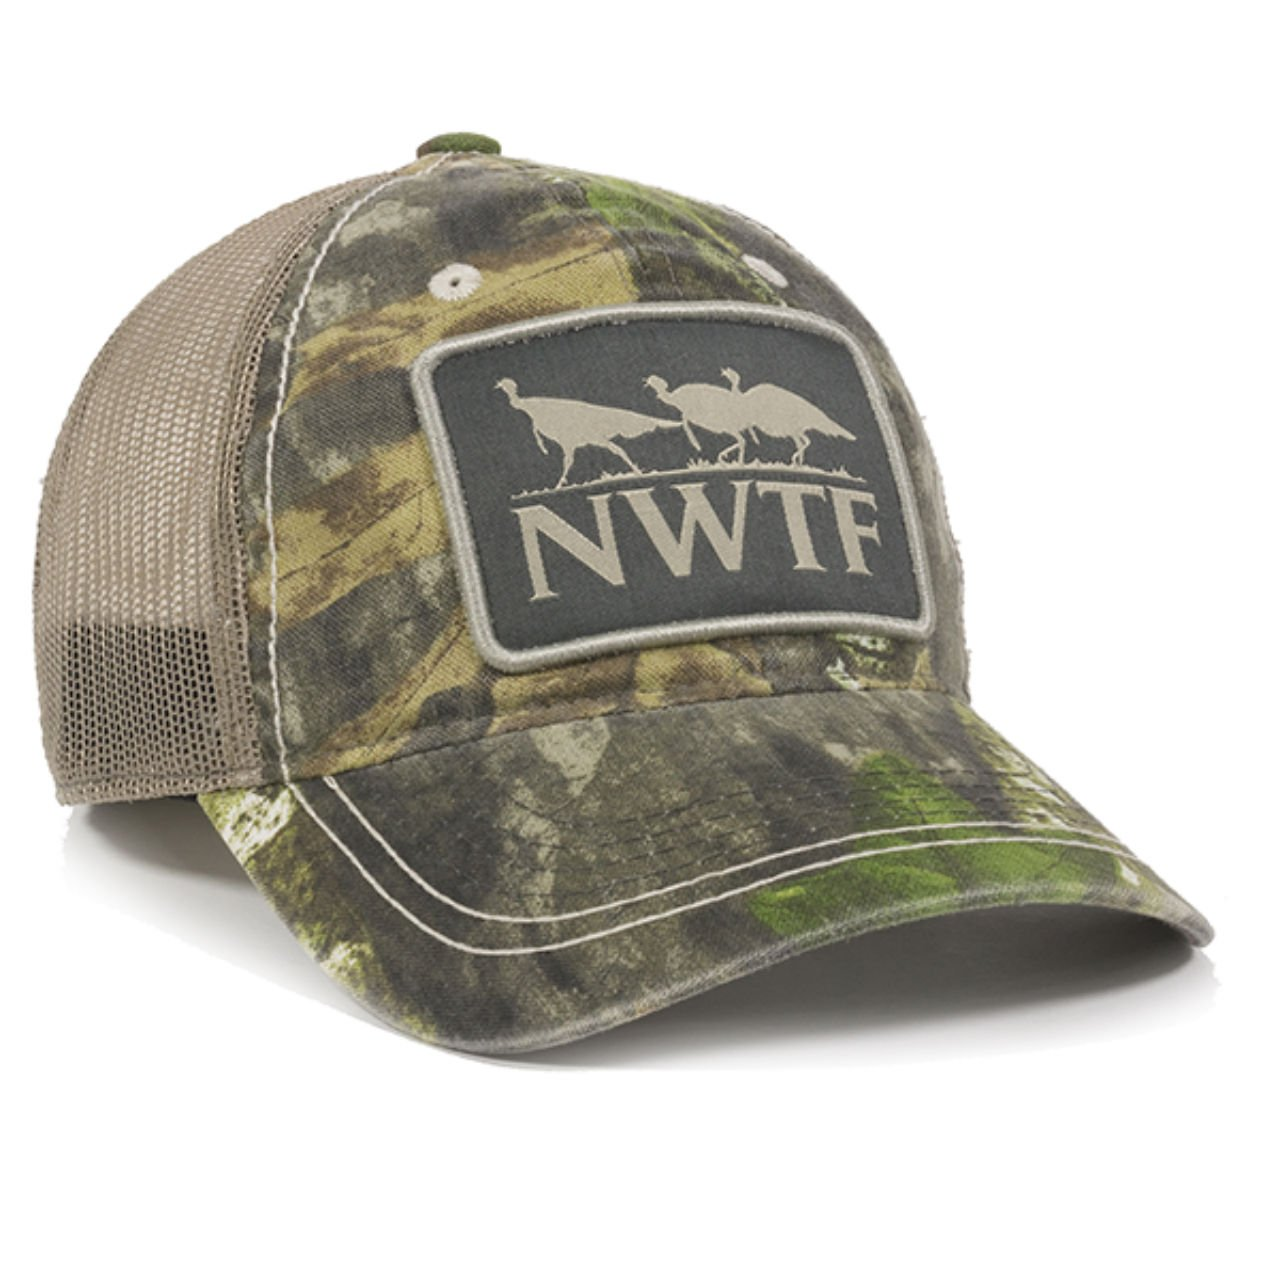 Outdoor Cap NWTF Mossy Oak Obsession National Wild Turkey Federation Camo Mesh Back Hunting Hat